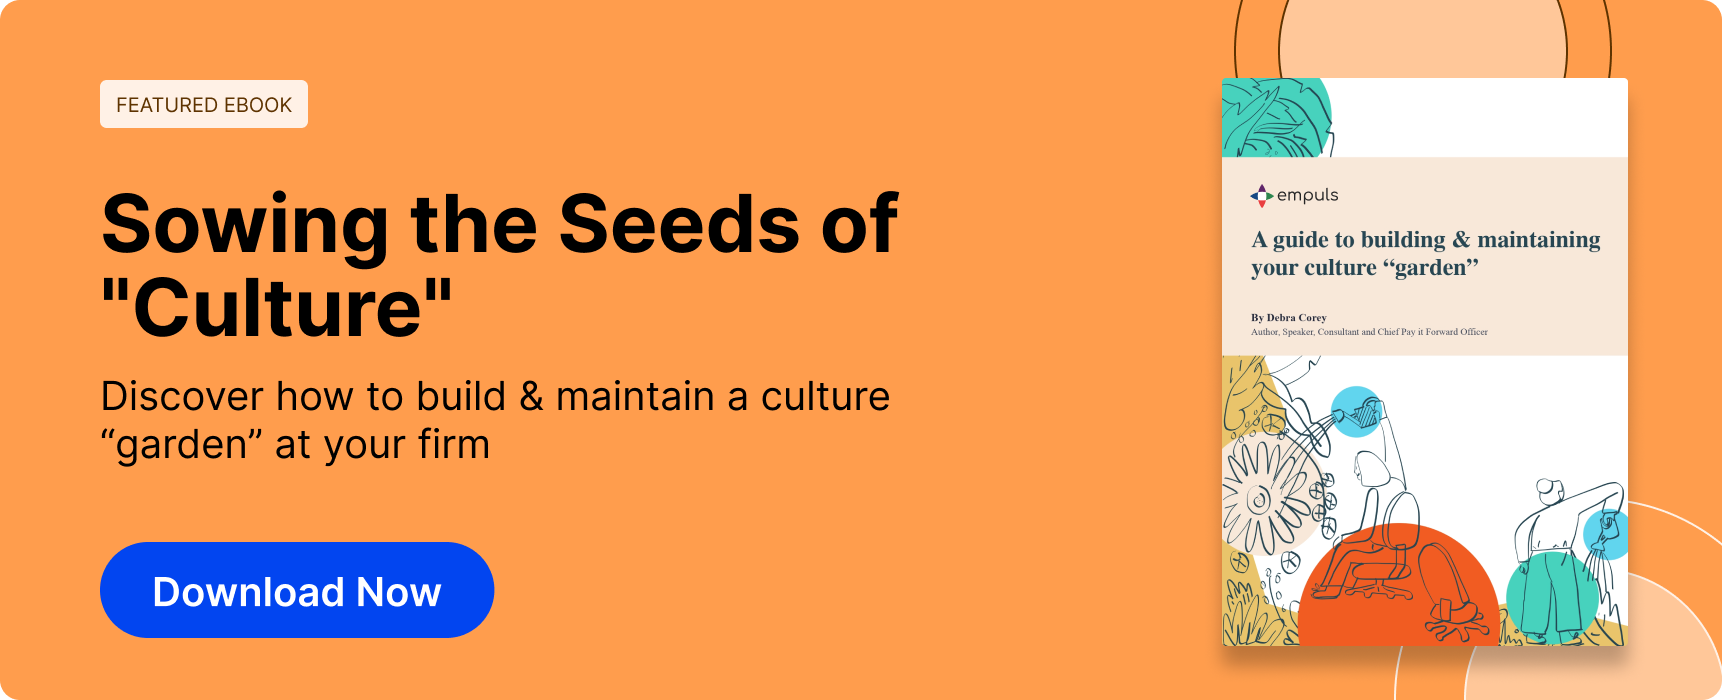 Discover how to build and maintain a culture garden at your firm